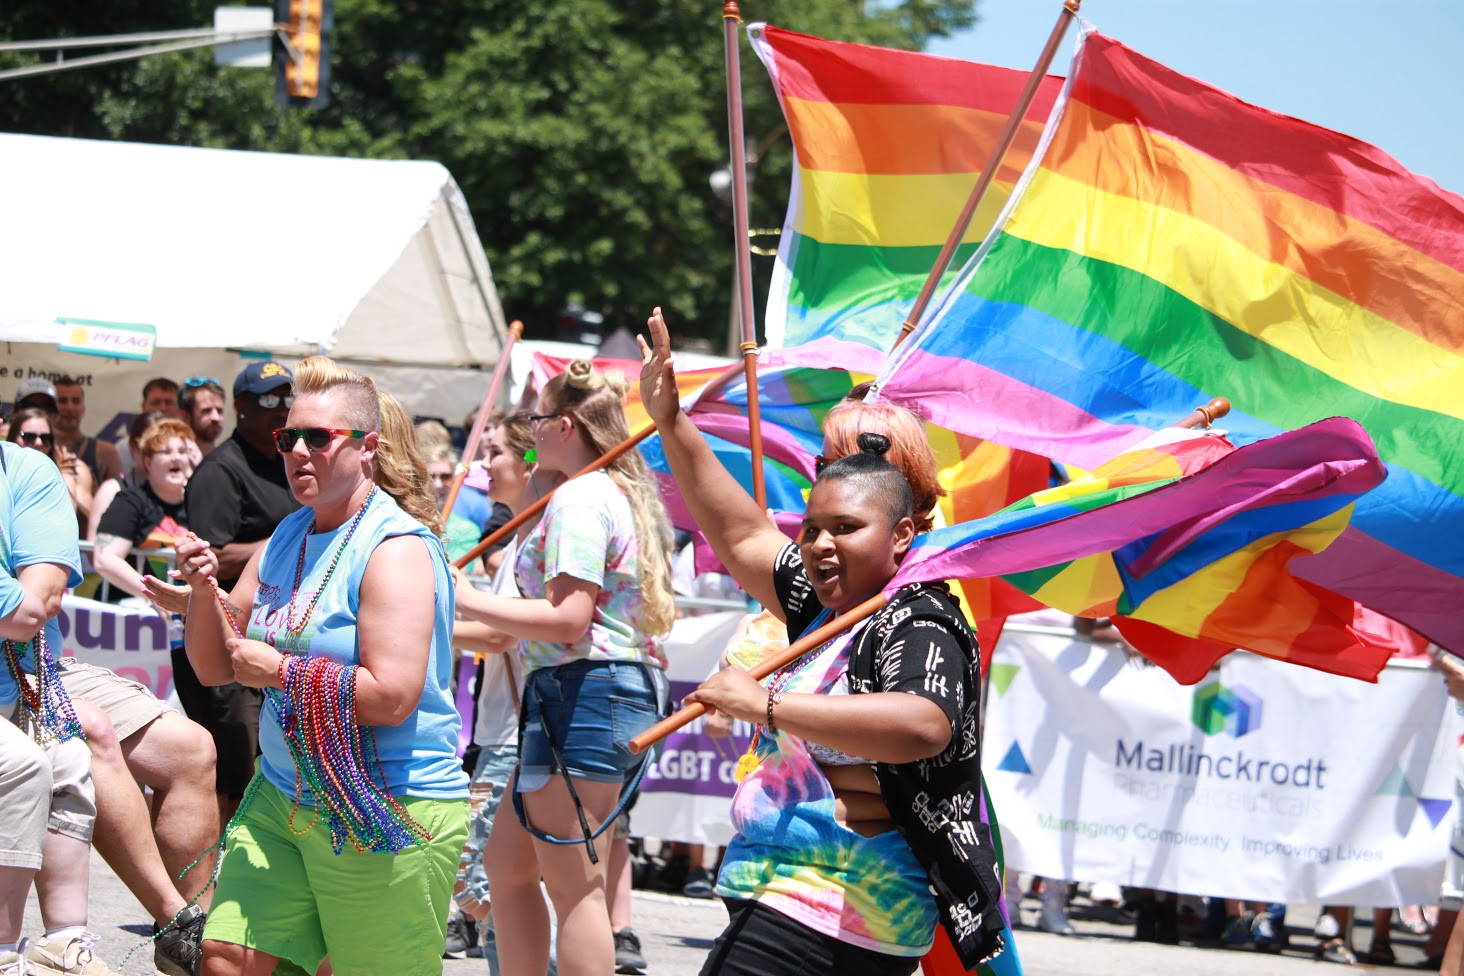 PrideSTL%2C+an+organization+working+to+raise+acceptance+for+the+LGBT+community+and+eliminate+prejudice+within+St.+Louis%2C+hosts+PrideFest%2C+June+25.